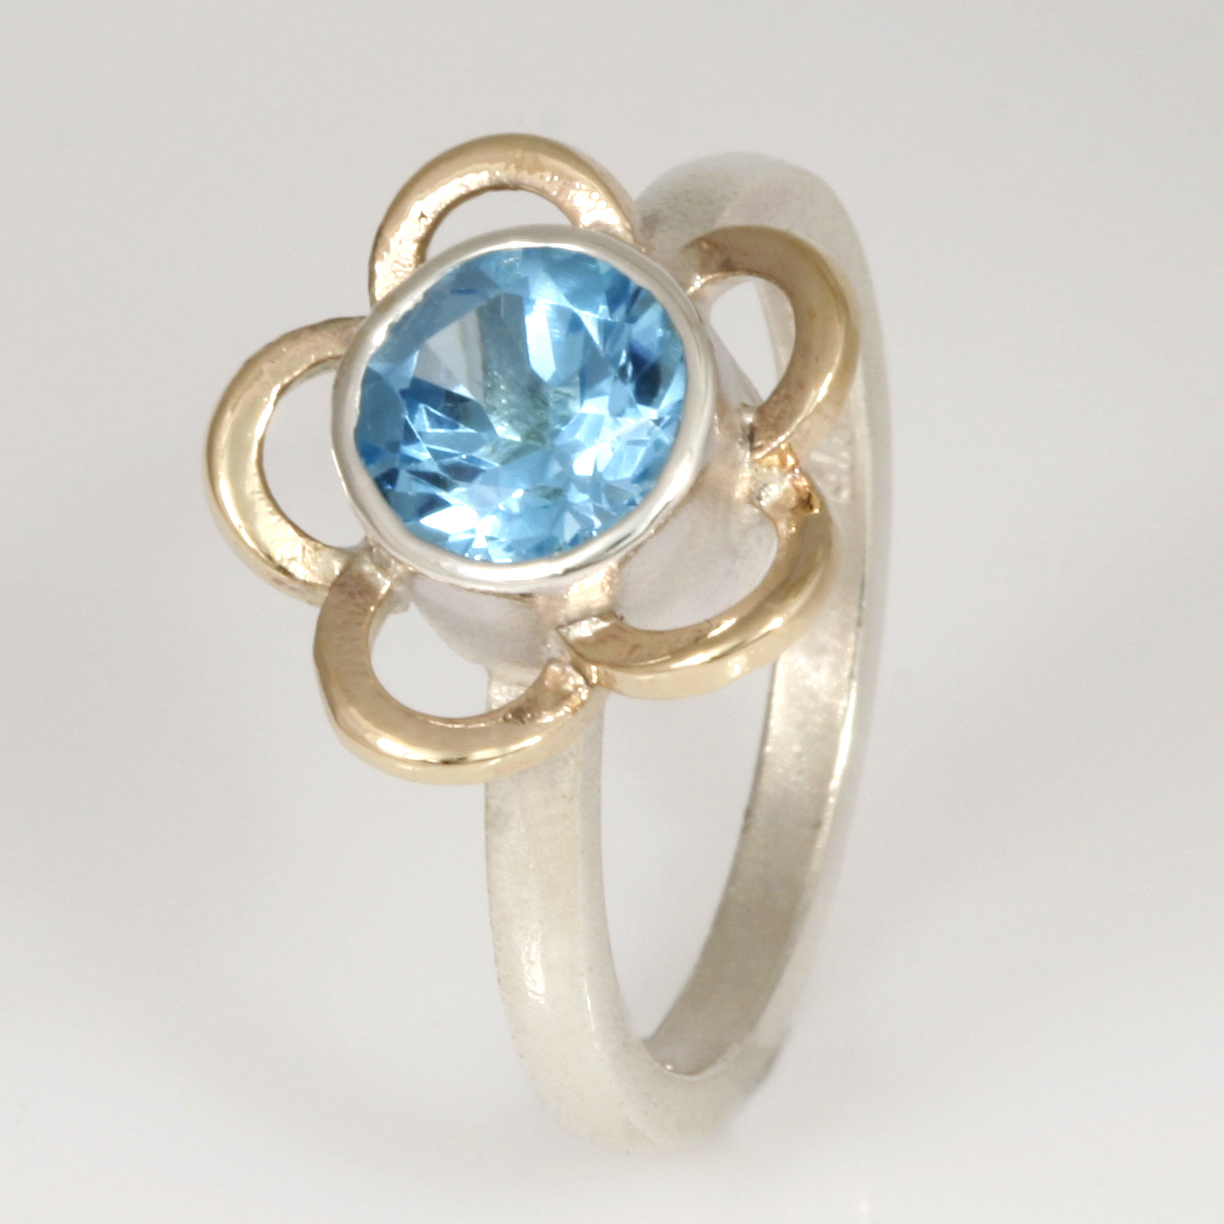 R146 Sterling silver ring with a 9ct yellow gold flower cut out surrounding a 7mm round blue topaz.  $390